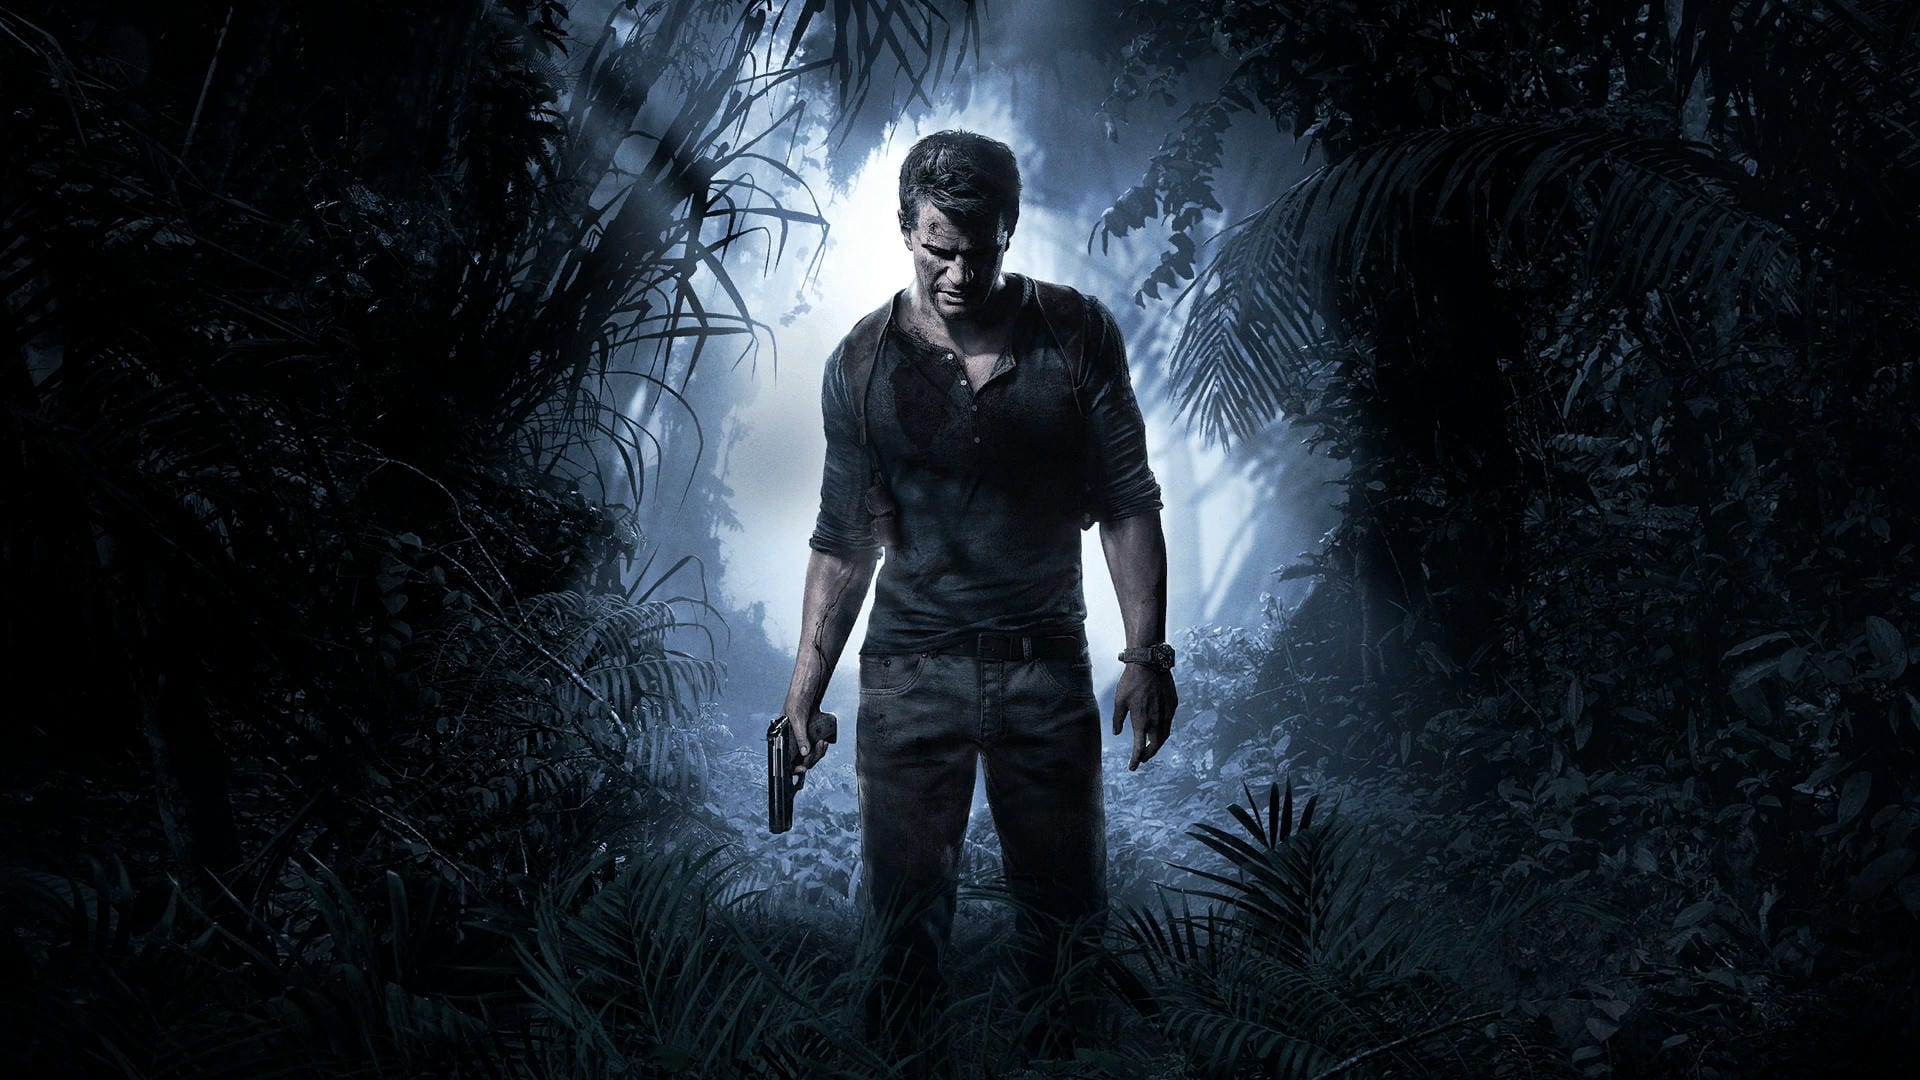 Sony San Diego is likely working on a new Uncharted game.